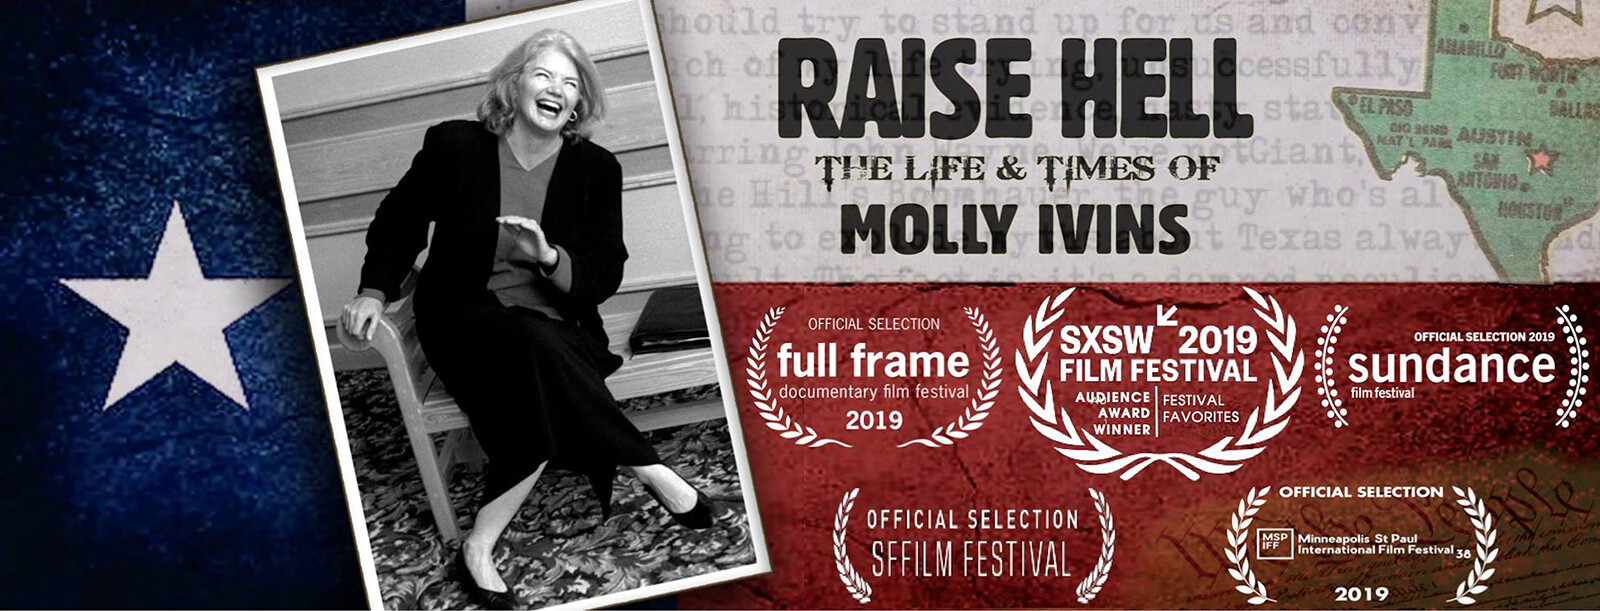 raise-hell-molly-ivins